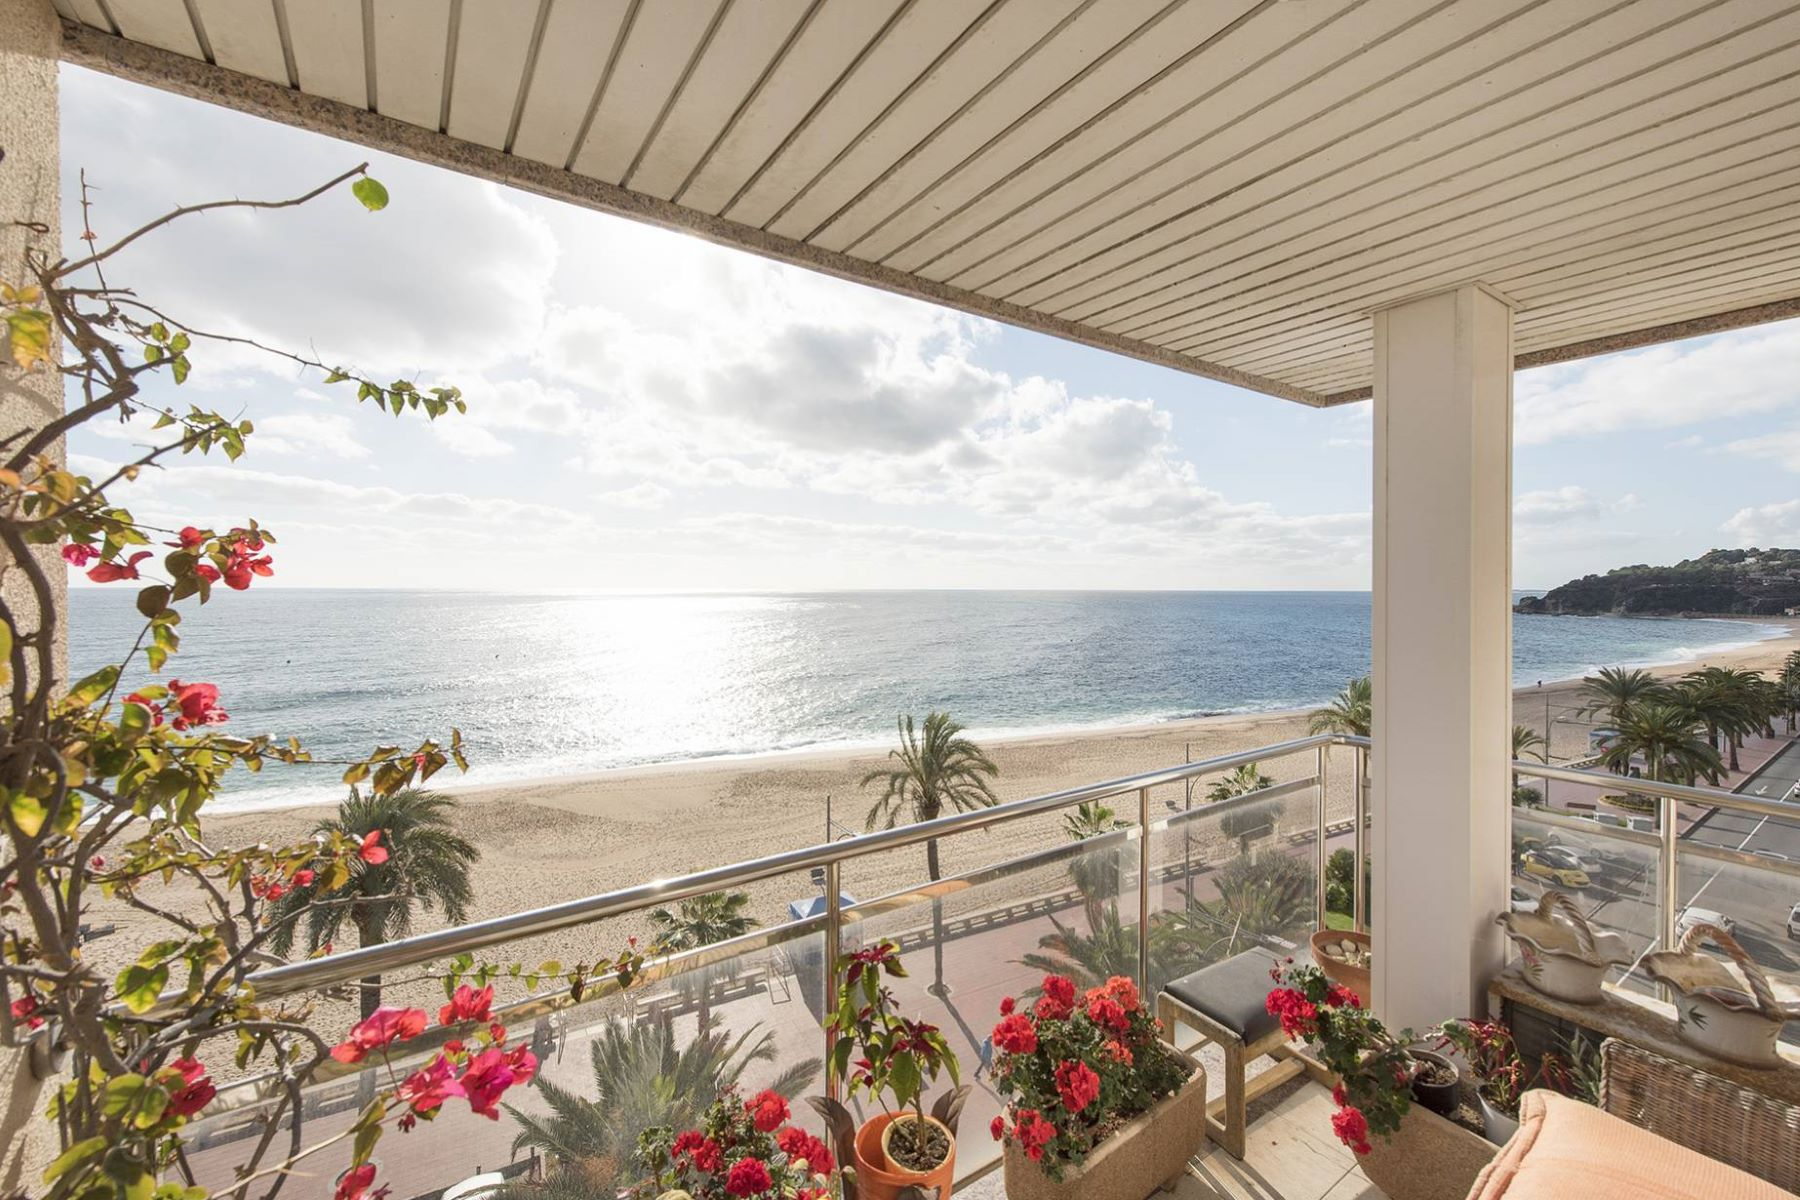 Apartment for Sale at Opportunity to buy an apartment on the seafront Lloret De Mar, Costa Brava, 17310 Spain